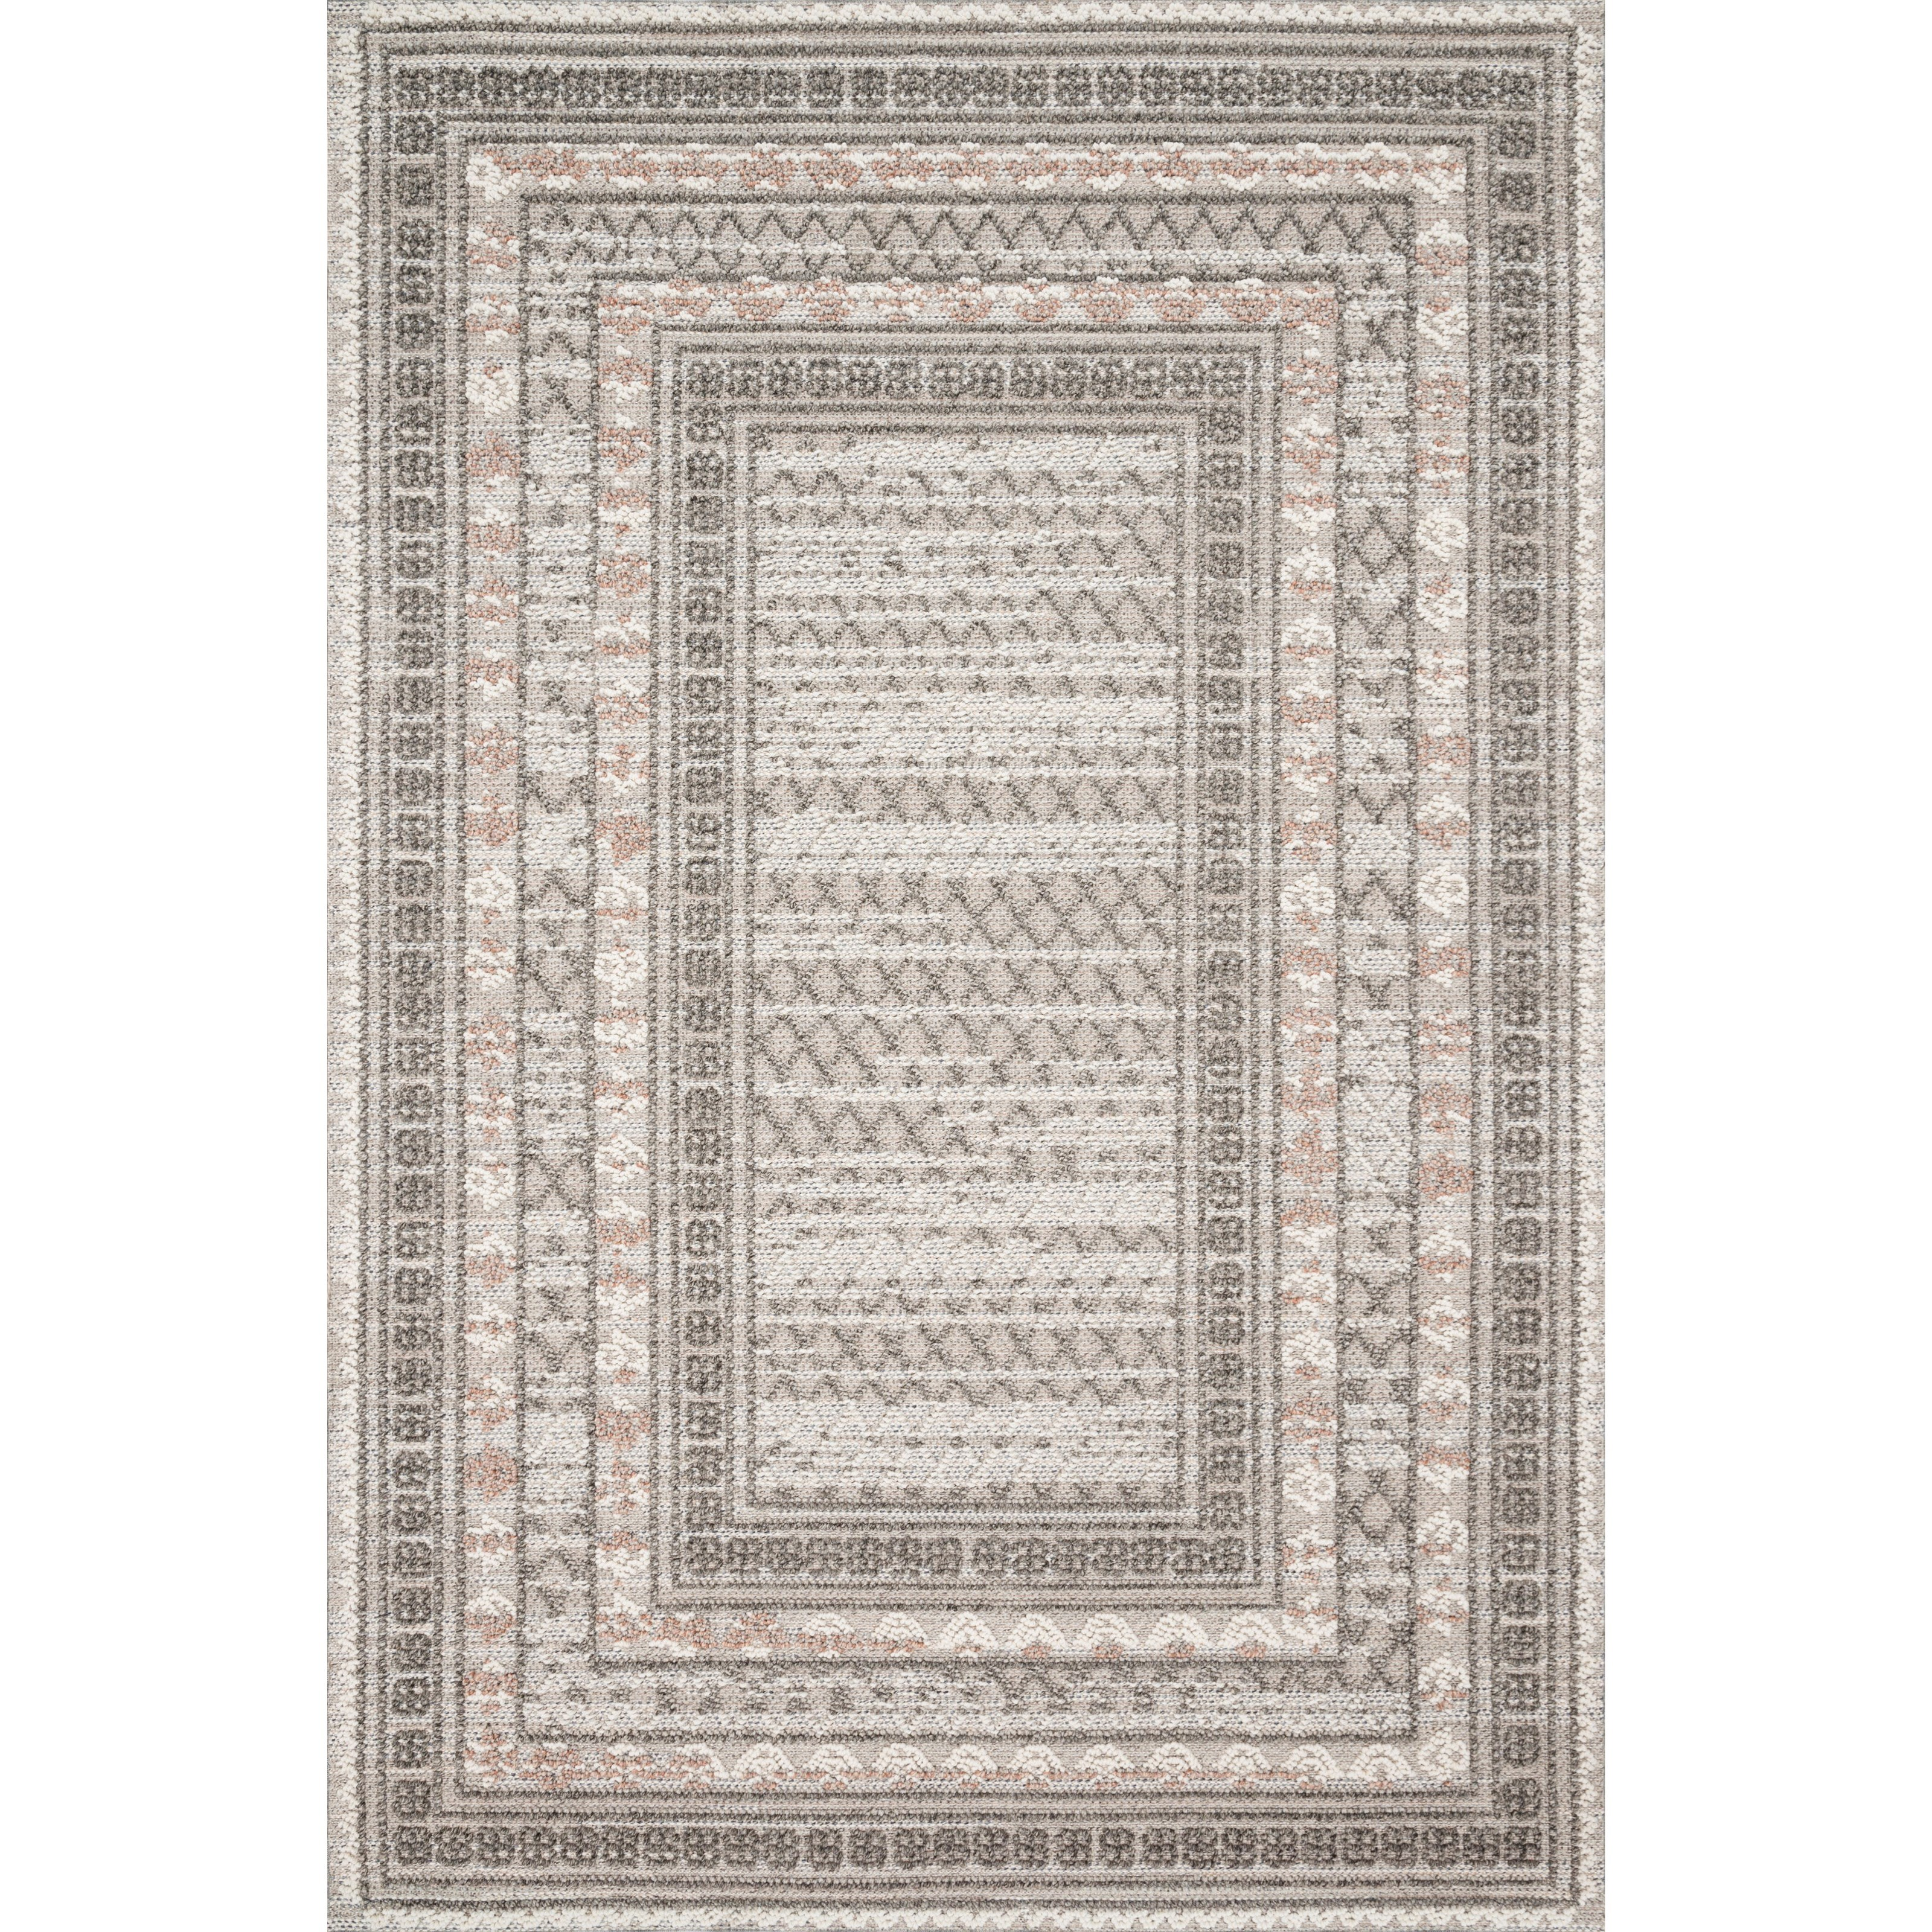 """Cole 9'6"""" x 12'8"""" Grey / Multi Rug by Loloi Rugs at Sprintz Furniture"""